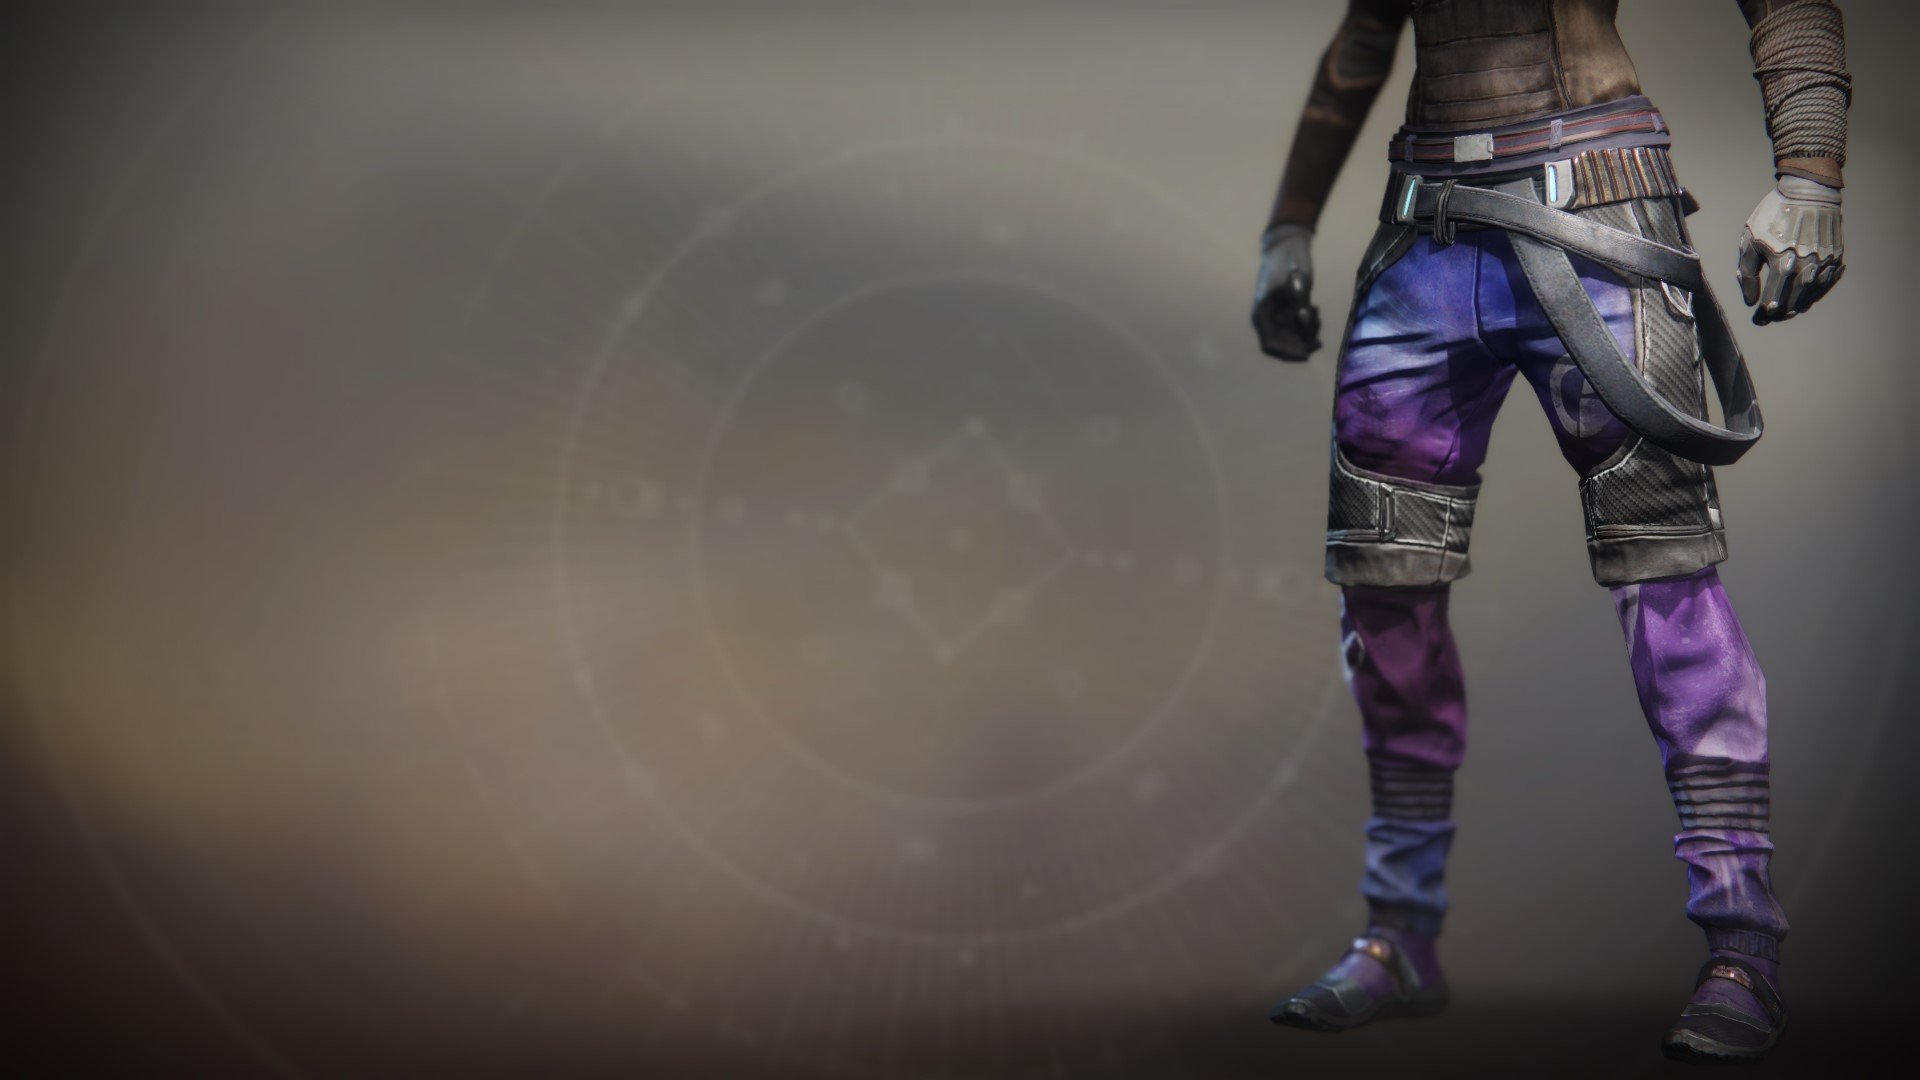 An in-game render of the Gemini Jester.